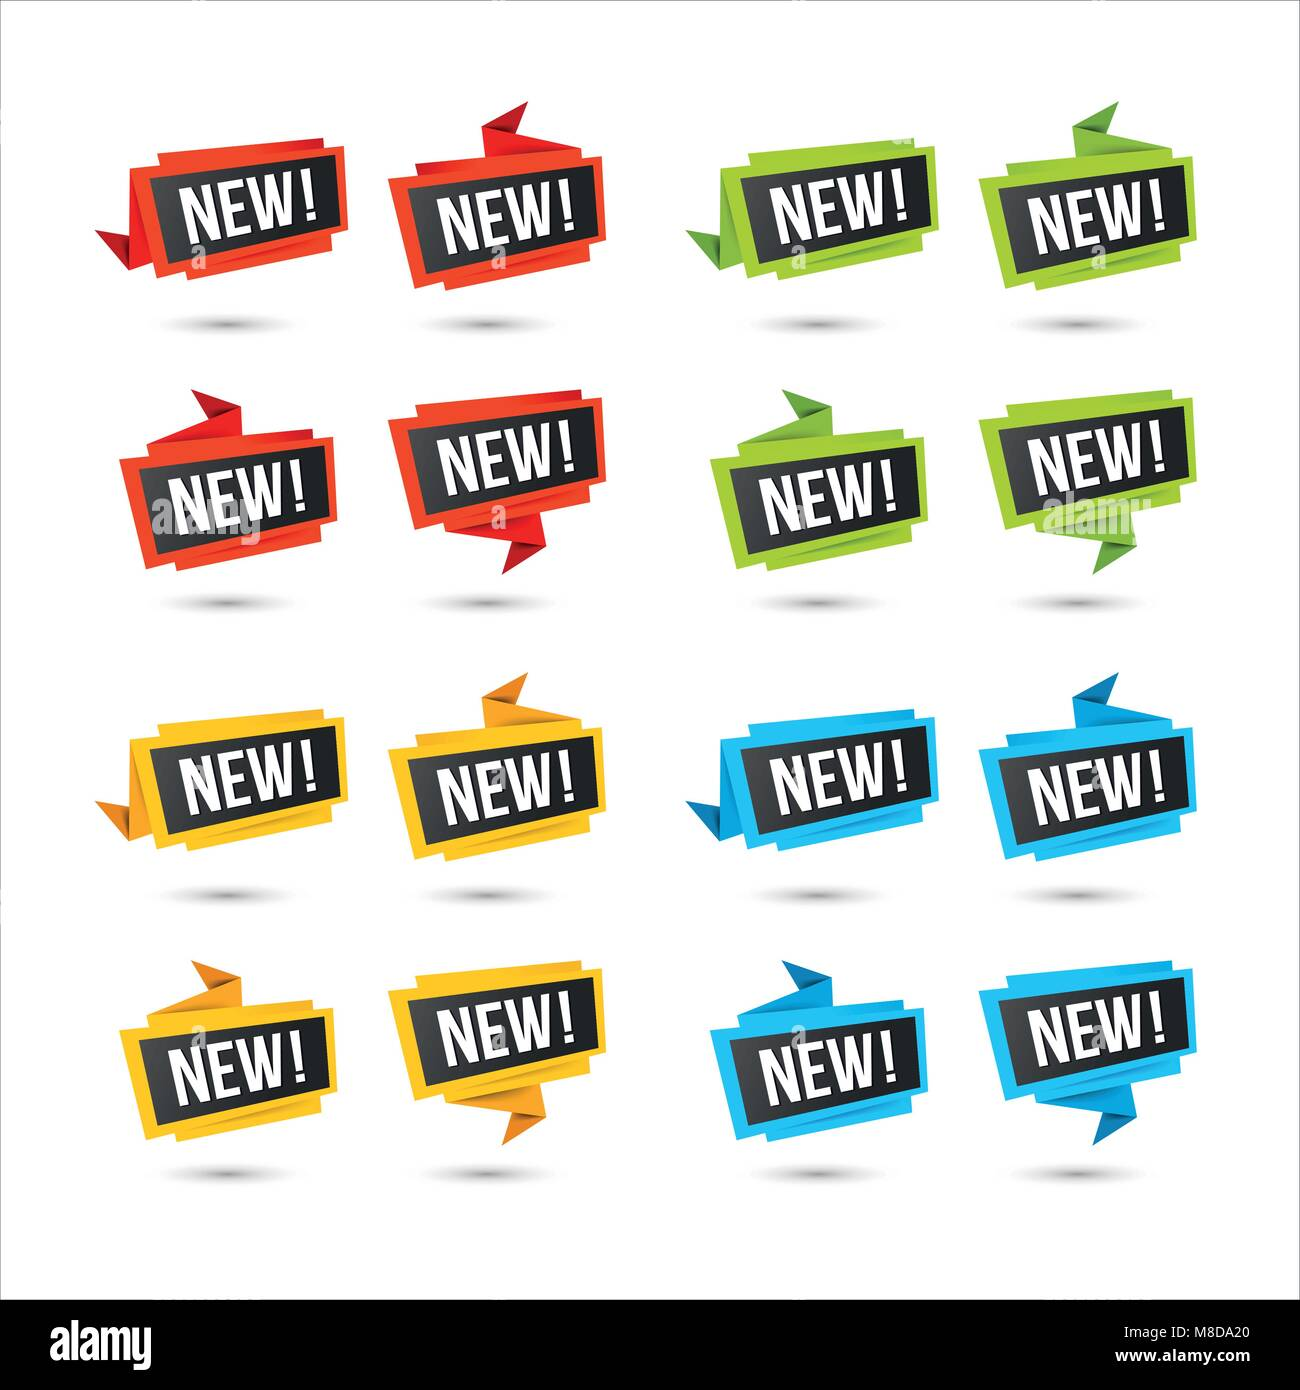 Labels for new arrival, price, or location. Vector web icons, in paper Origami style, isolated on white. - Stock Image